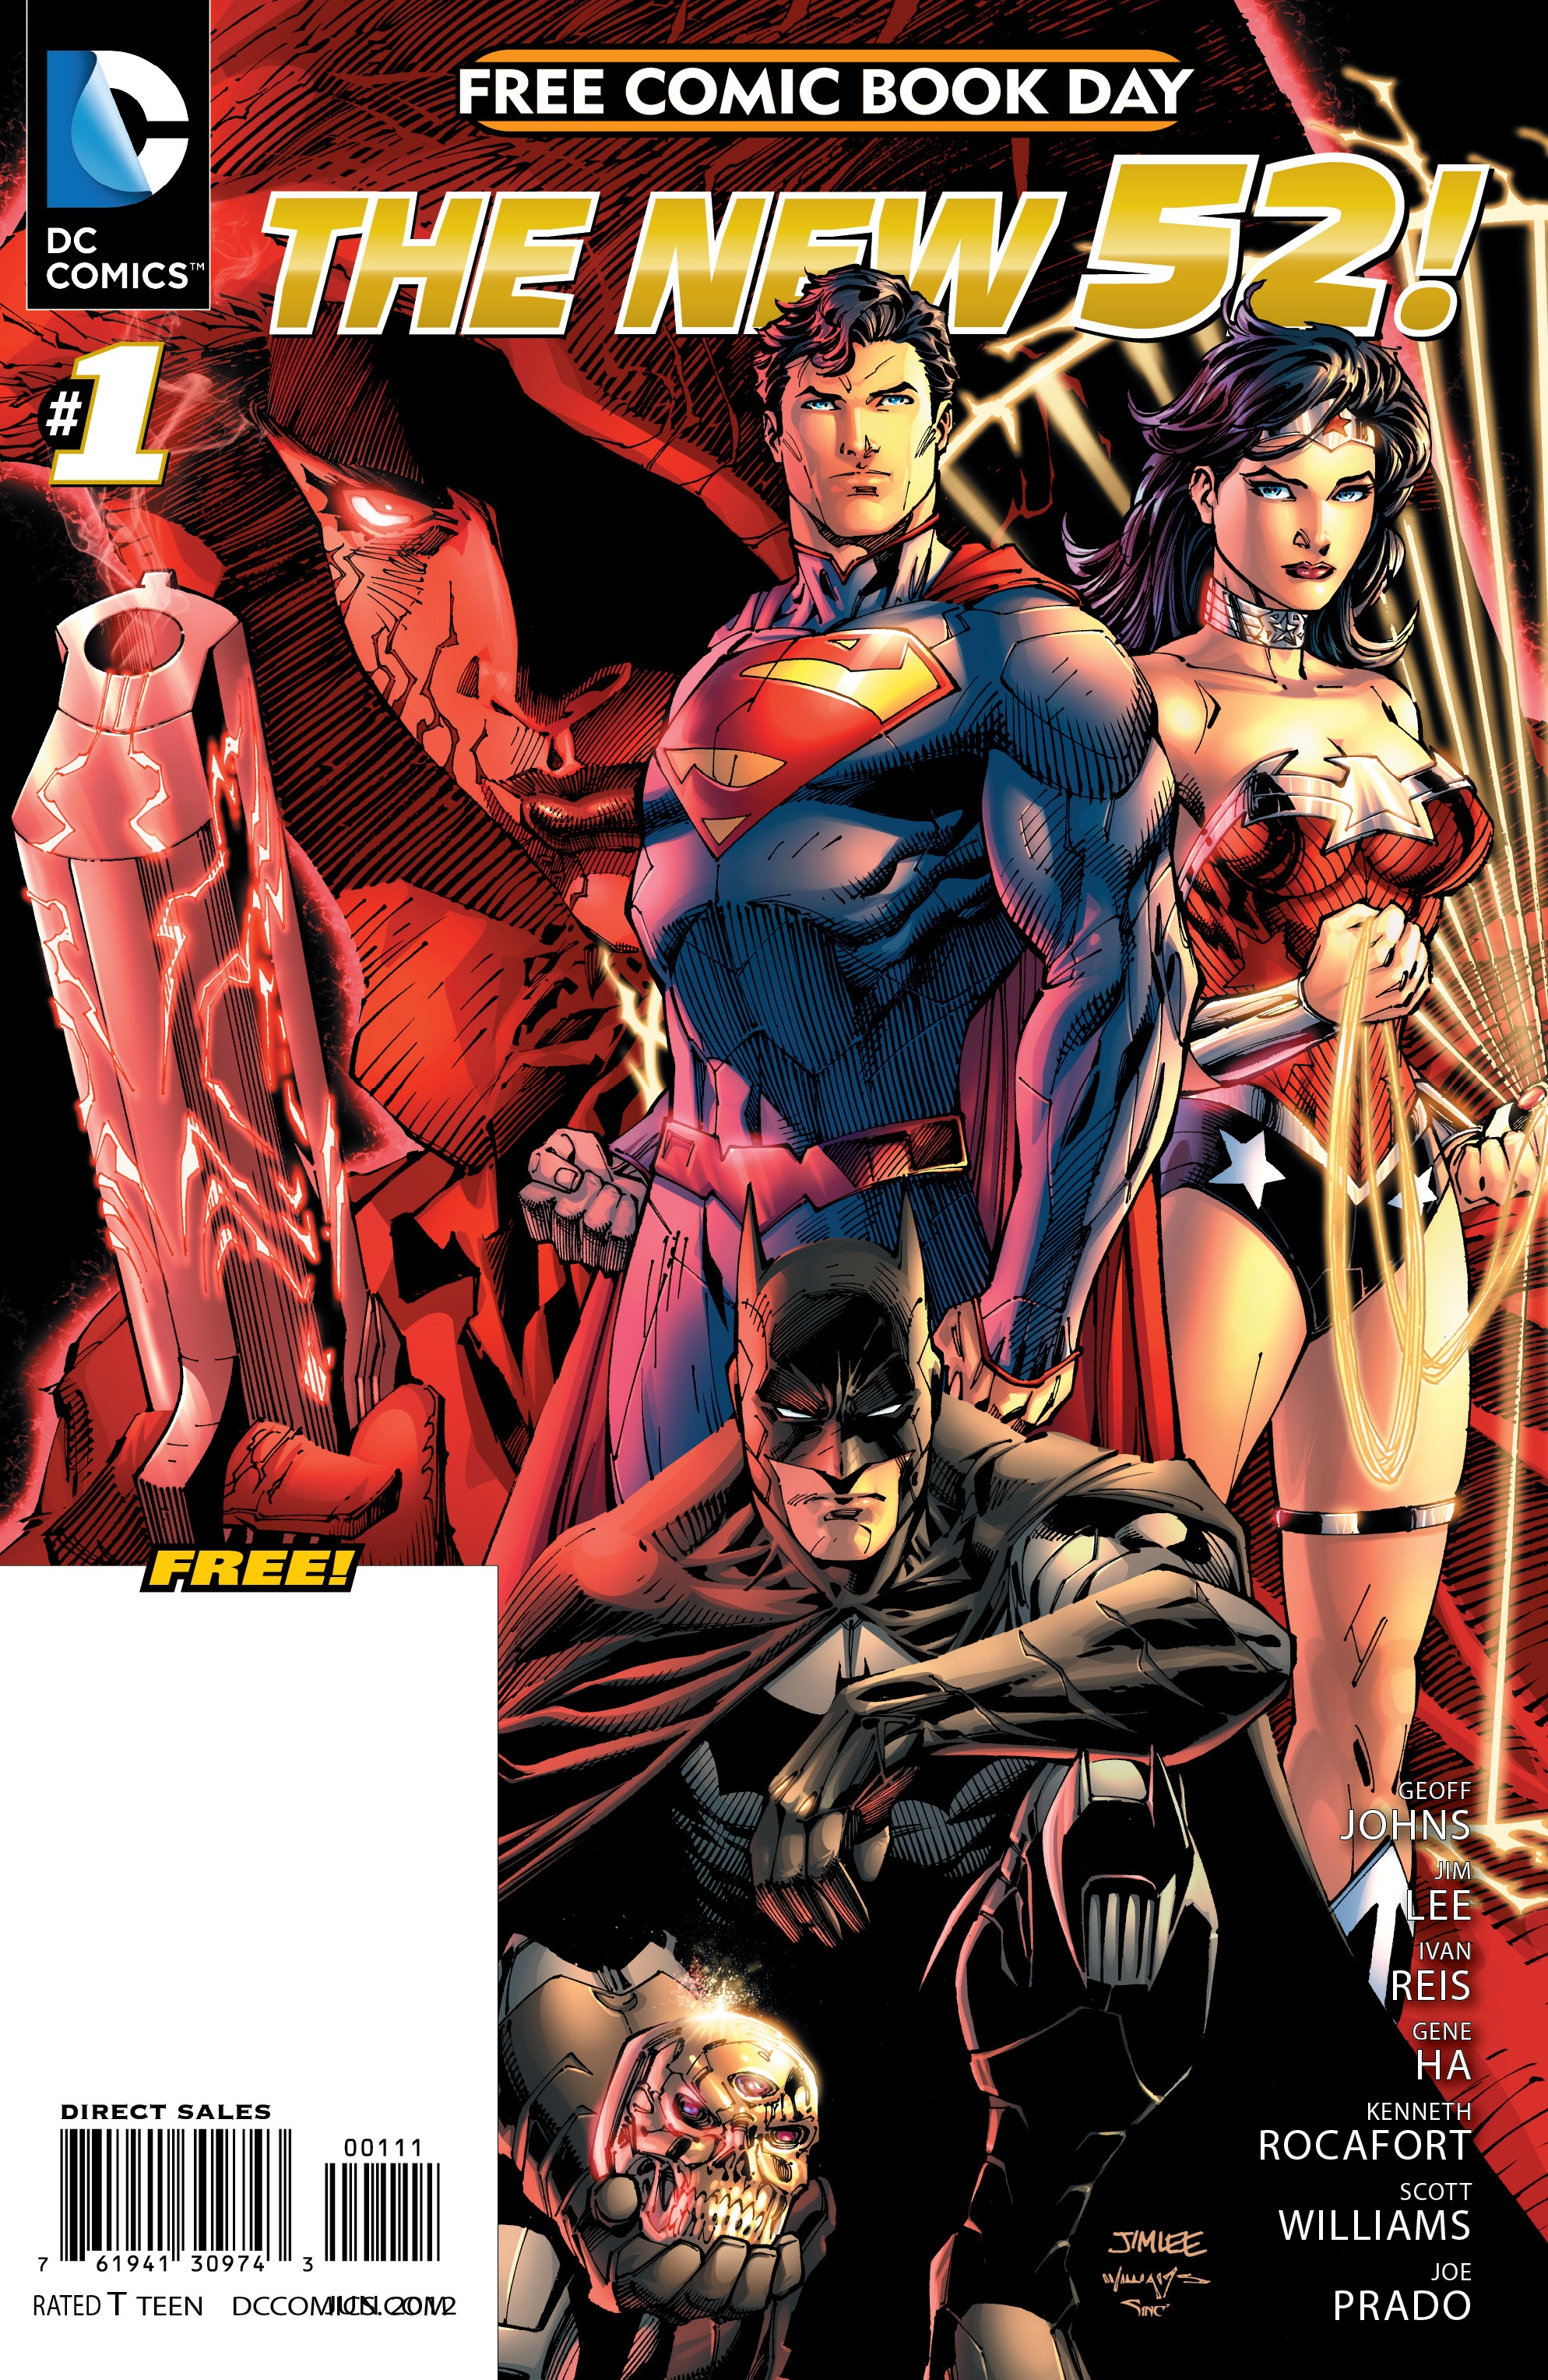 http://www.supermanhomepage.com/images/comic-covers/Post-Flashpoint-Covers/JusticeLeague-2012/DC-New-52-1-FCBD.jpg